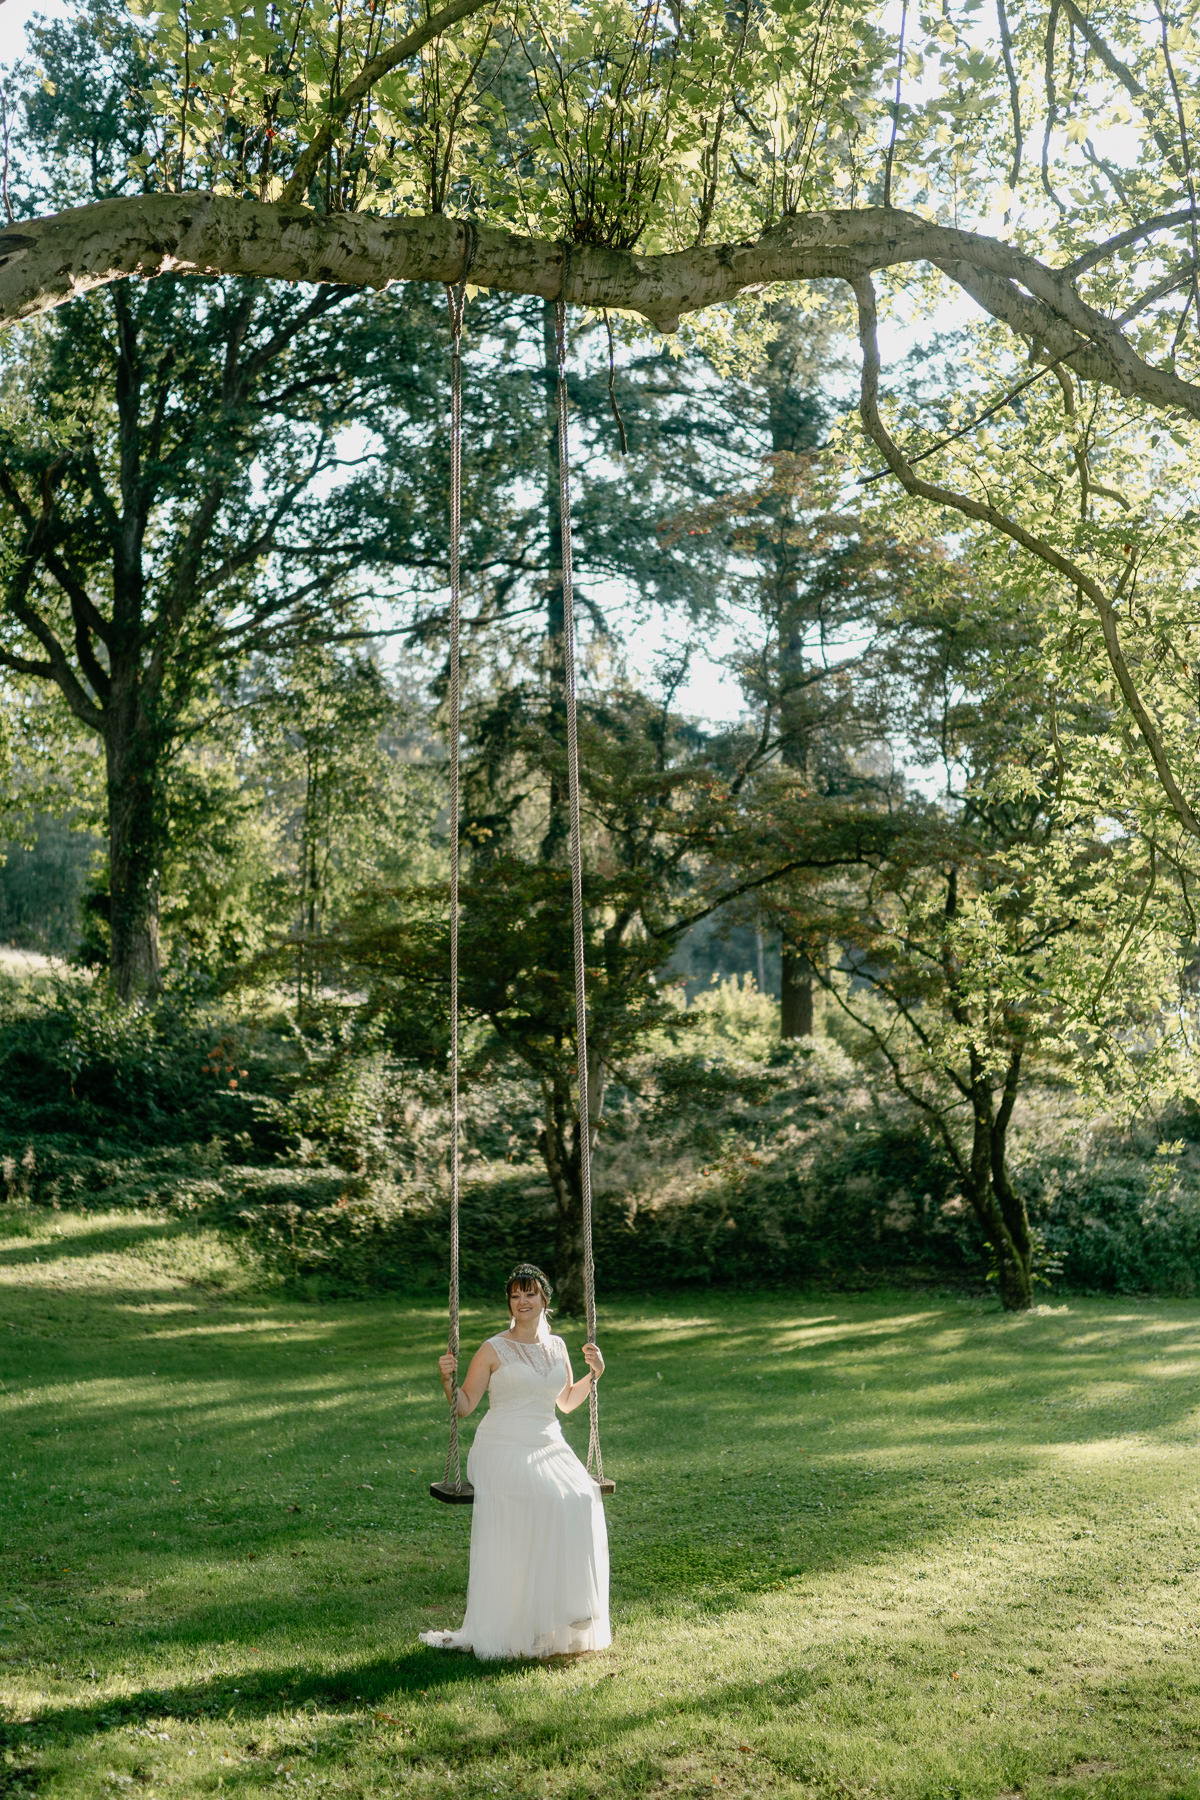 Bridal portrait on a swing